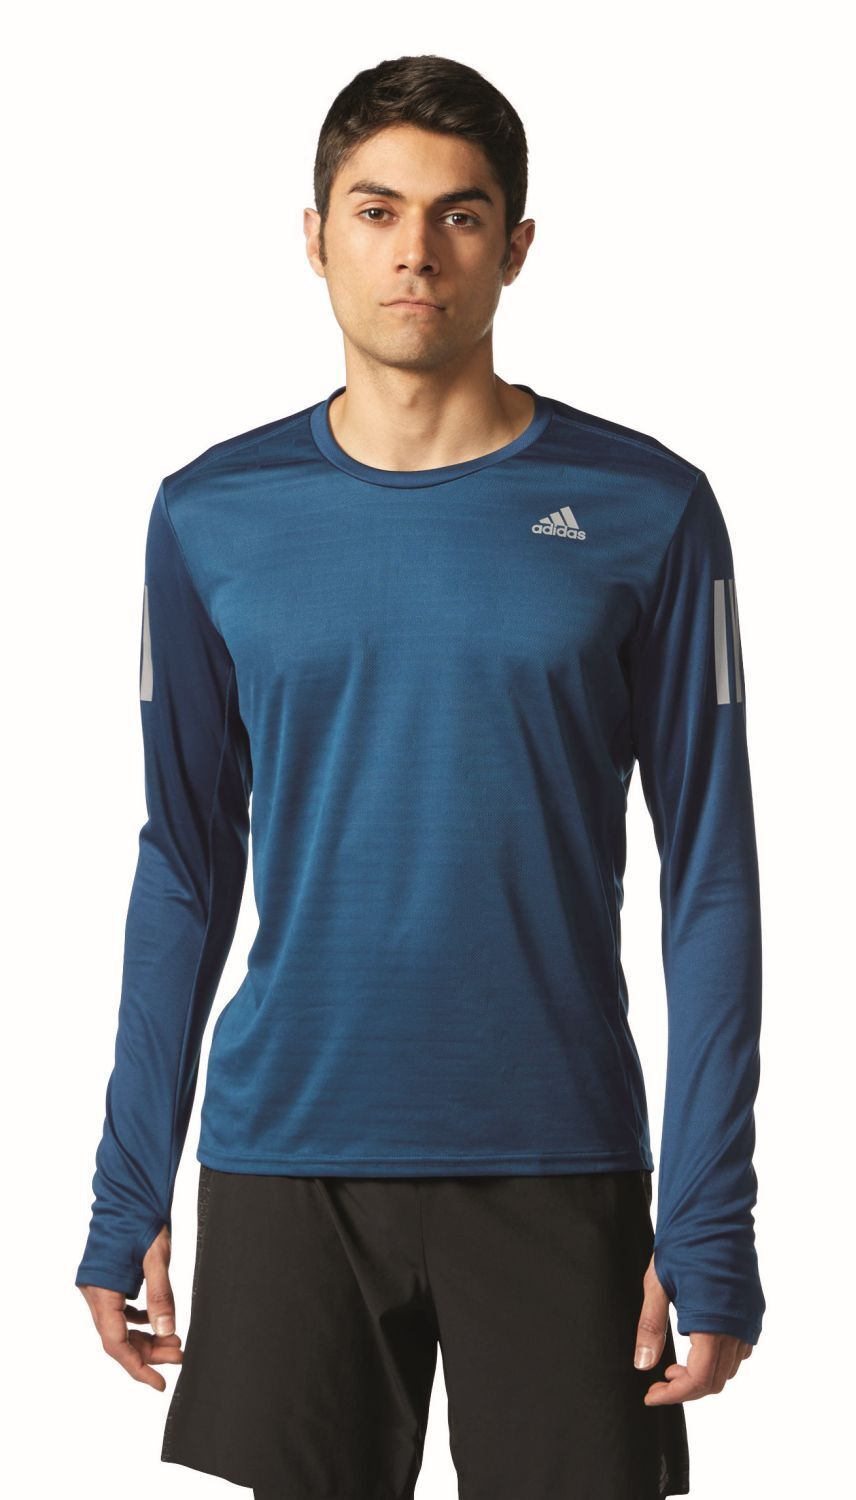 Adidas Performance Men's Long Sleeve Running Shirt Response T-Shirt Construction